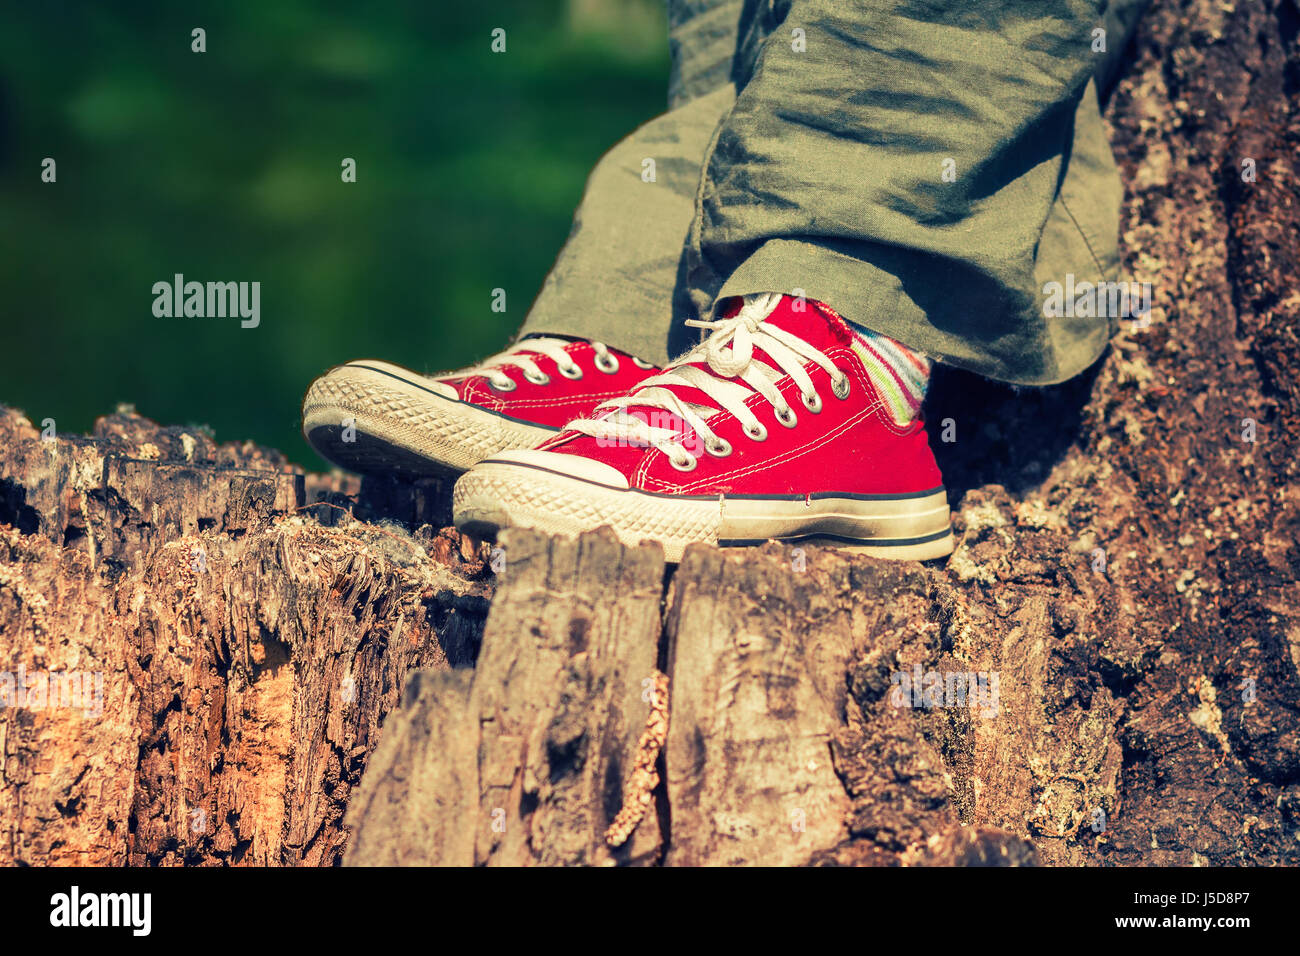 Female feet in bright red canvas sneakers, standing on a tree stump, wearing green linen pants - Stock Image